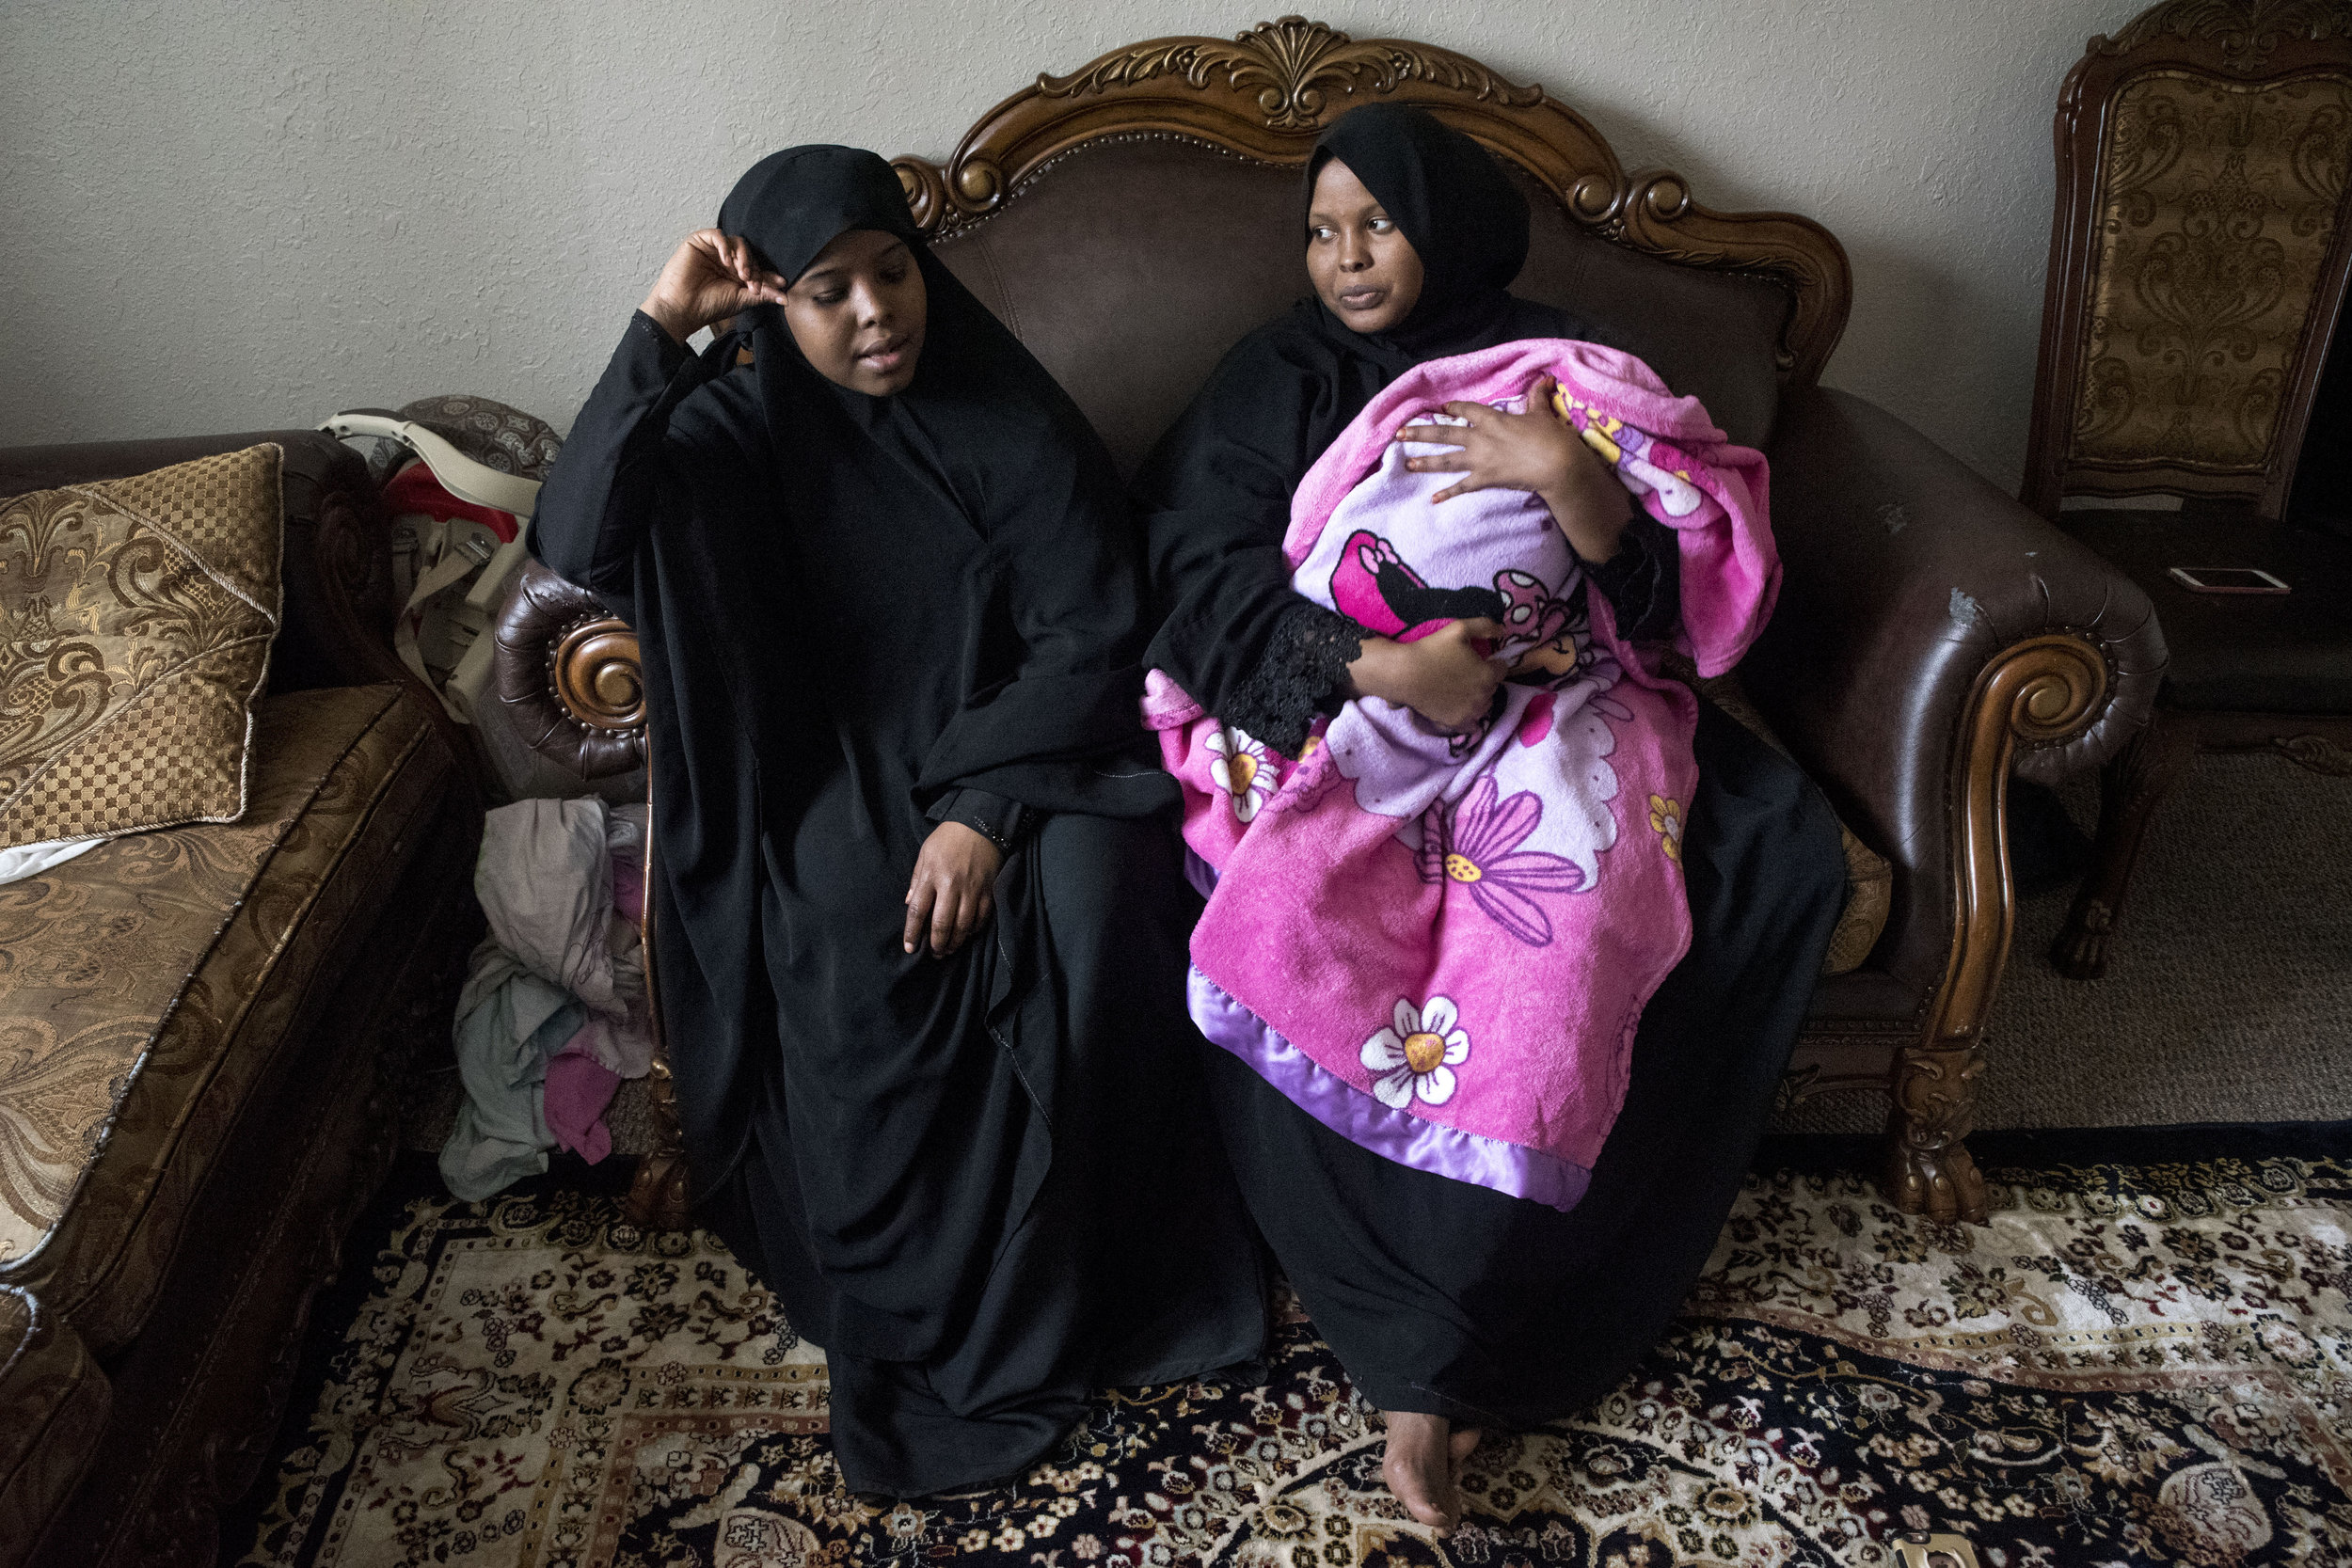 """Hamdi Kosar, left, and her sister Ismahan Kosar with her three-month-old son Ilhan Liban sit on the couch in their apartment in Willmar Mar. 30. Kosar's sister gave birth to Liban this January. Both sisters stayed in Minnesota while their family lives in Kenya for several years. """"I am going to miss them, but I have a life here now,"""" said Kosar. """"It was hard to see them go but, I've created a community here and I want to keep working."""""""